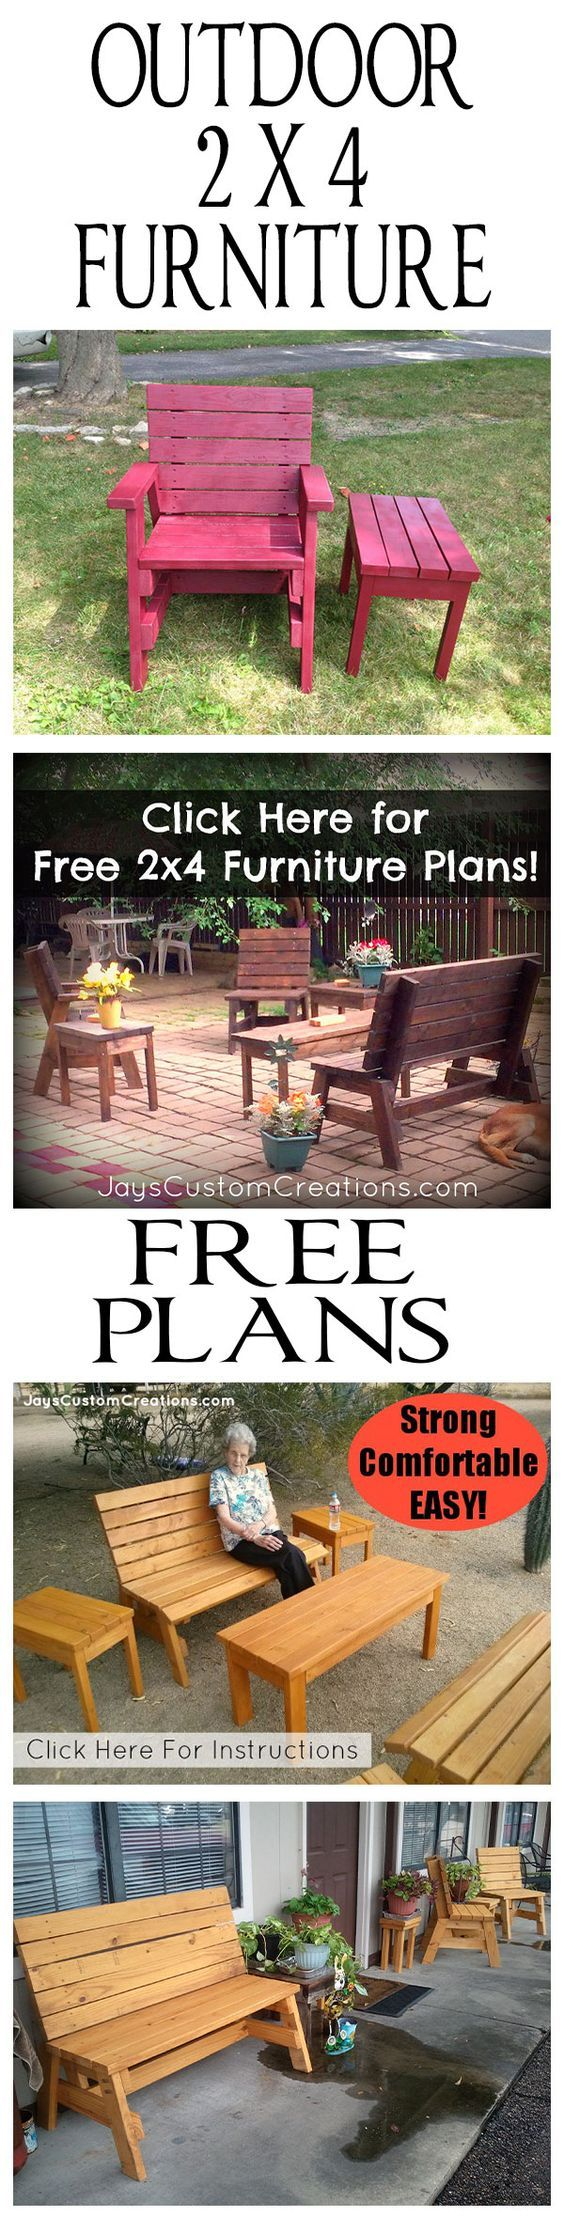 17 Best Images About Diy On Pinterest Outdoor Benches Workbenches And 4x4